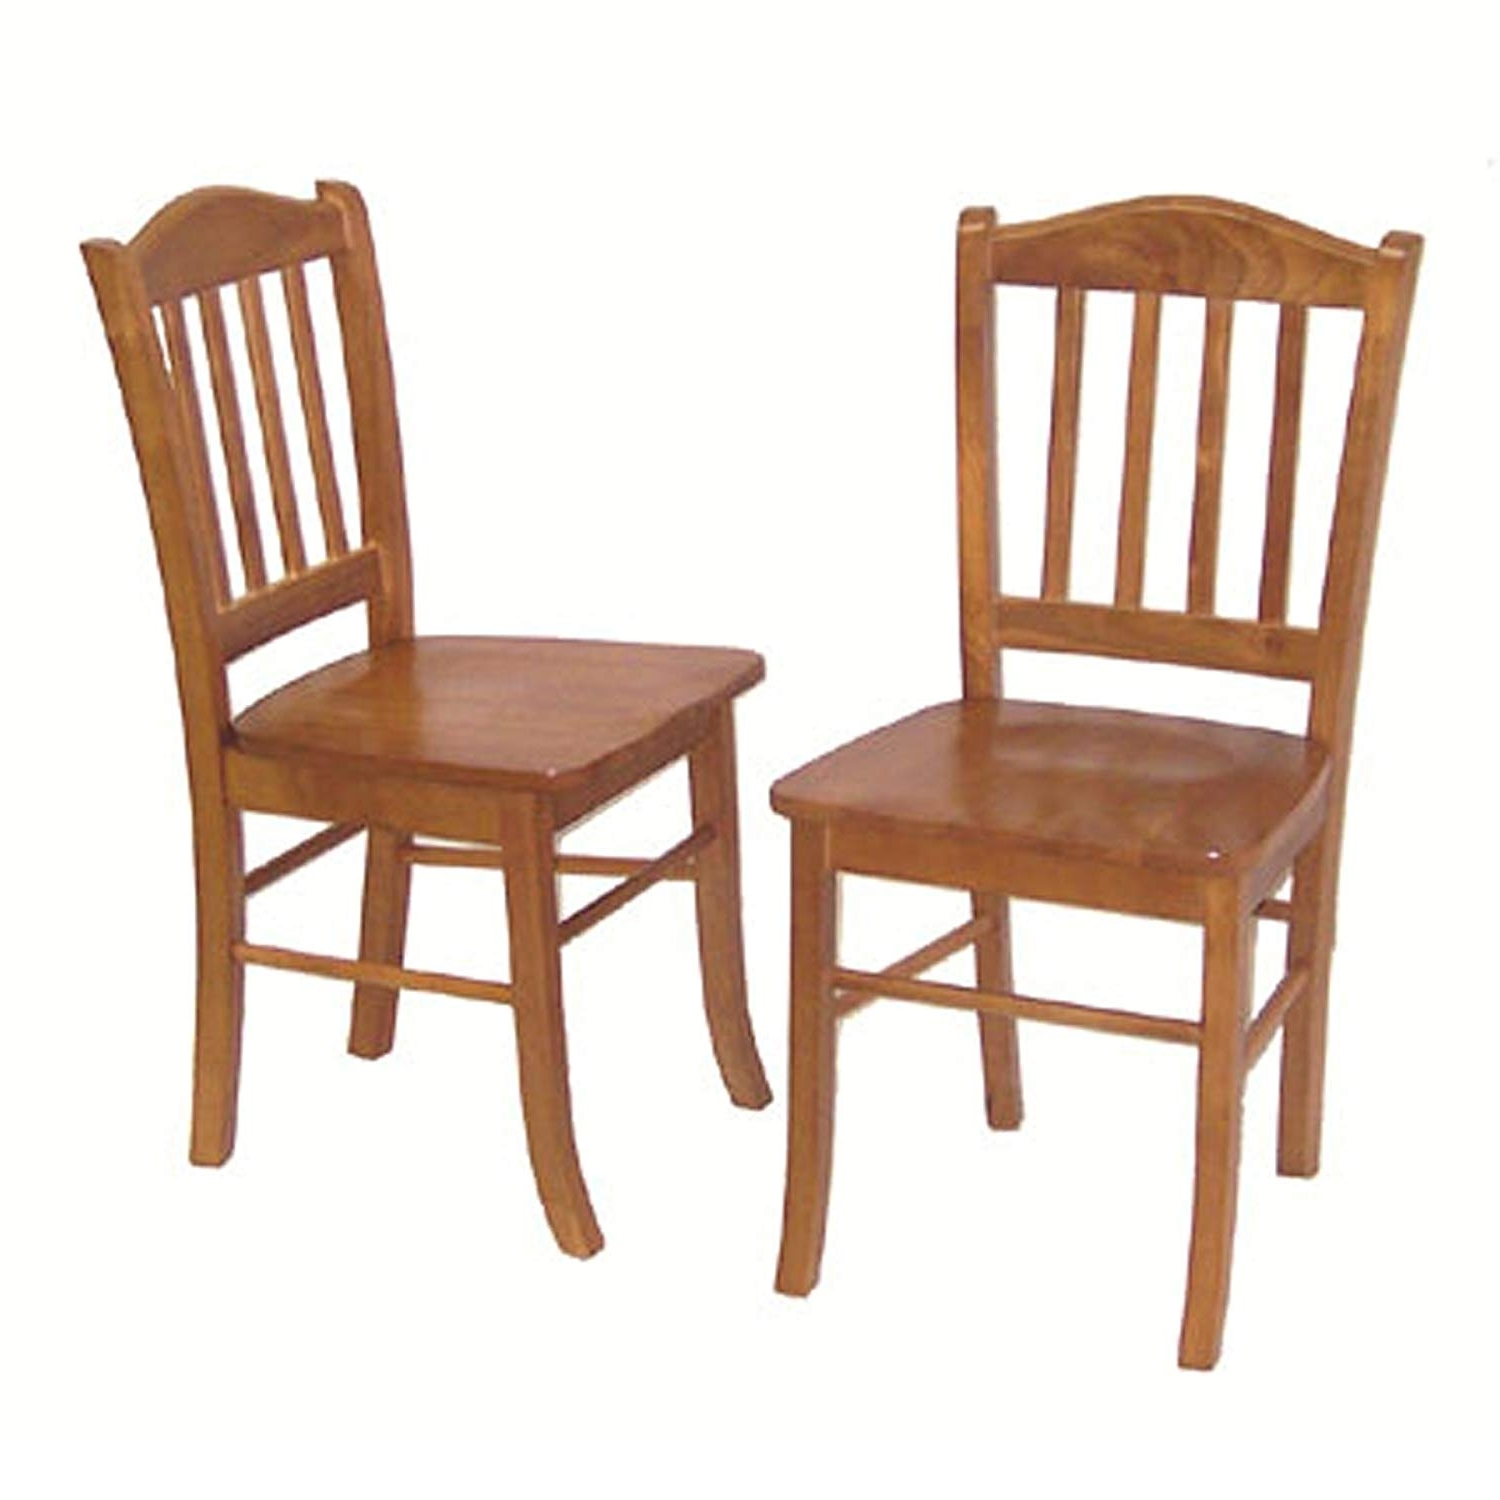 Favorite Bowery Ii Side Chairs Regarding Amazon: Boraam 30136 Shaker Chair, Oak, Set Of 2: Kitchen & Dining (View 18 of 20)